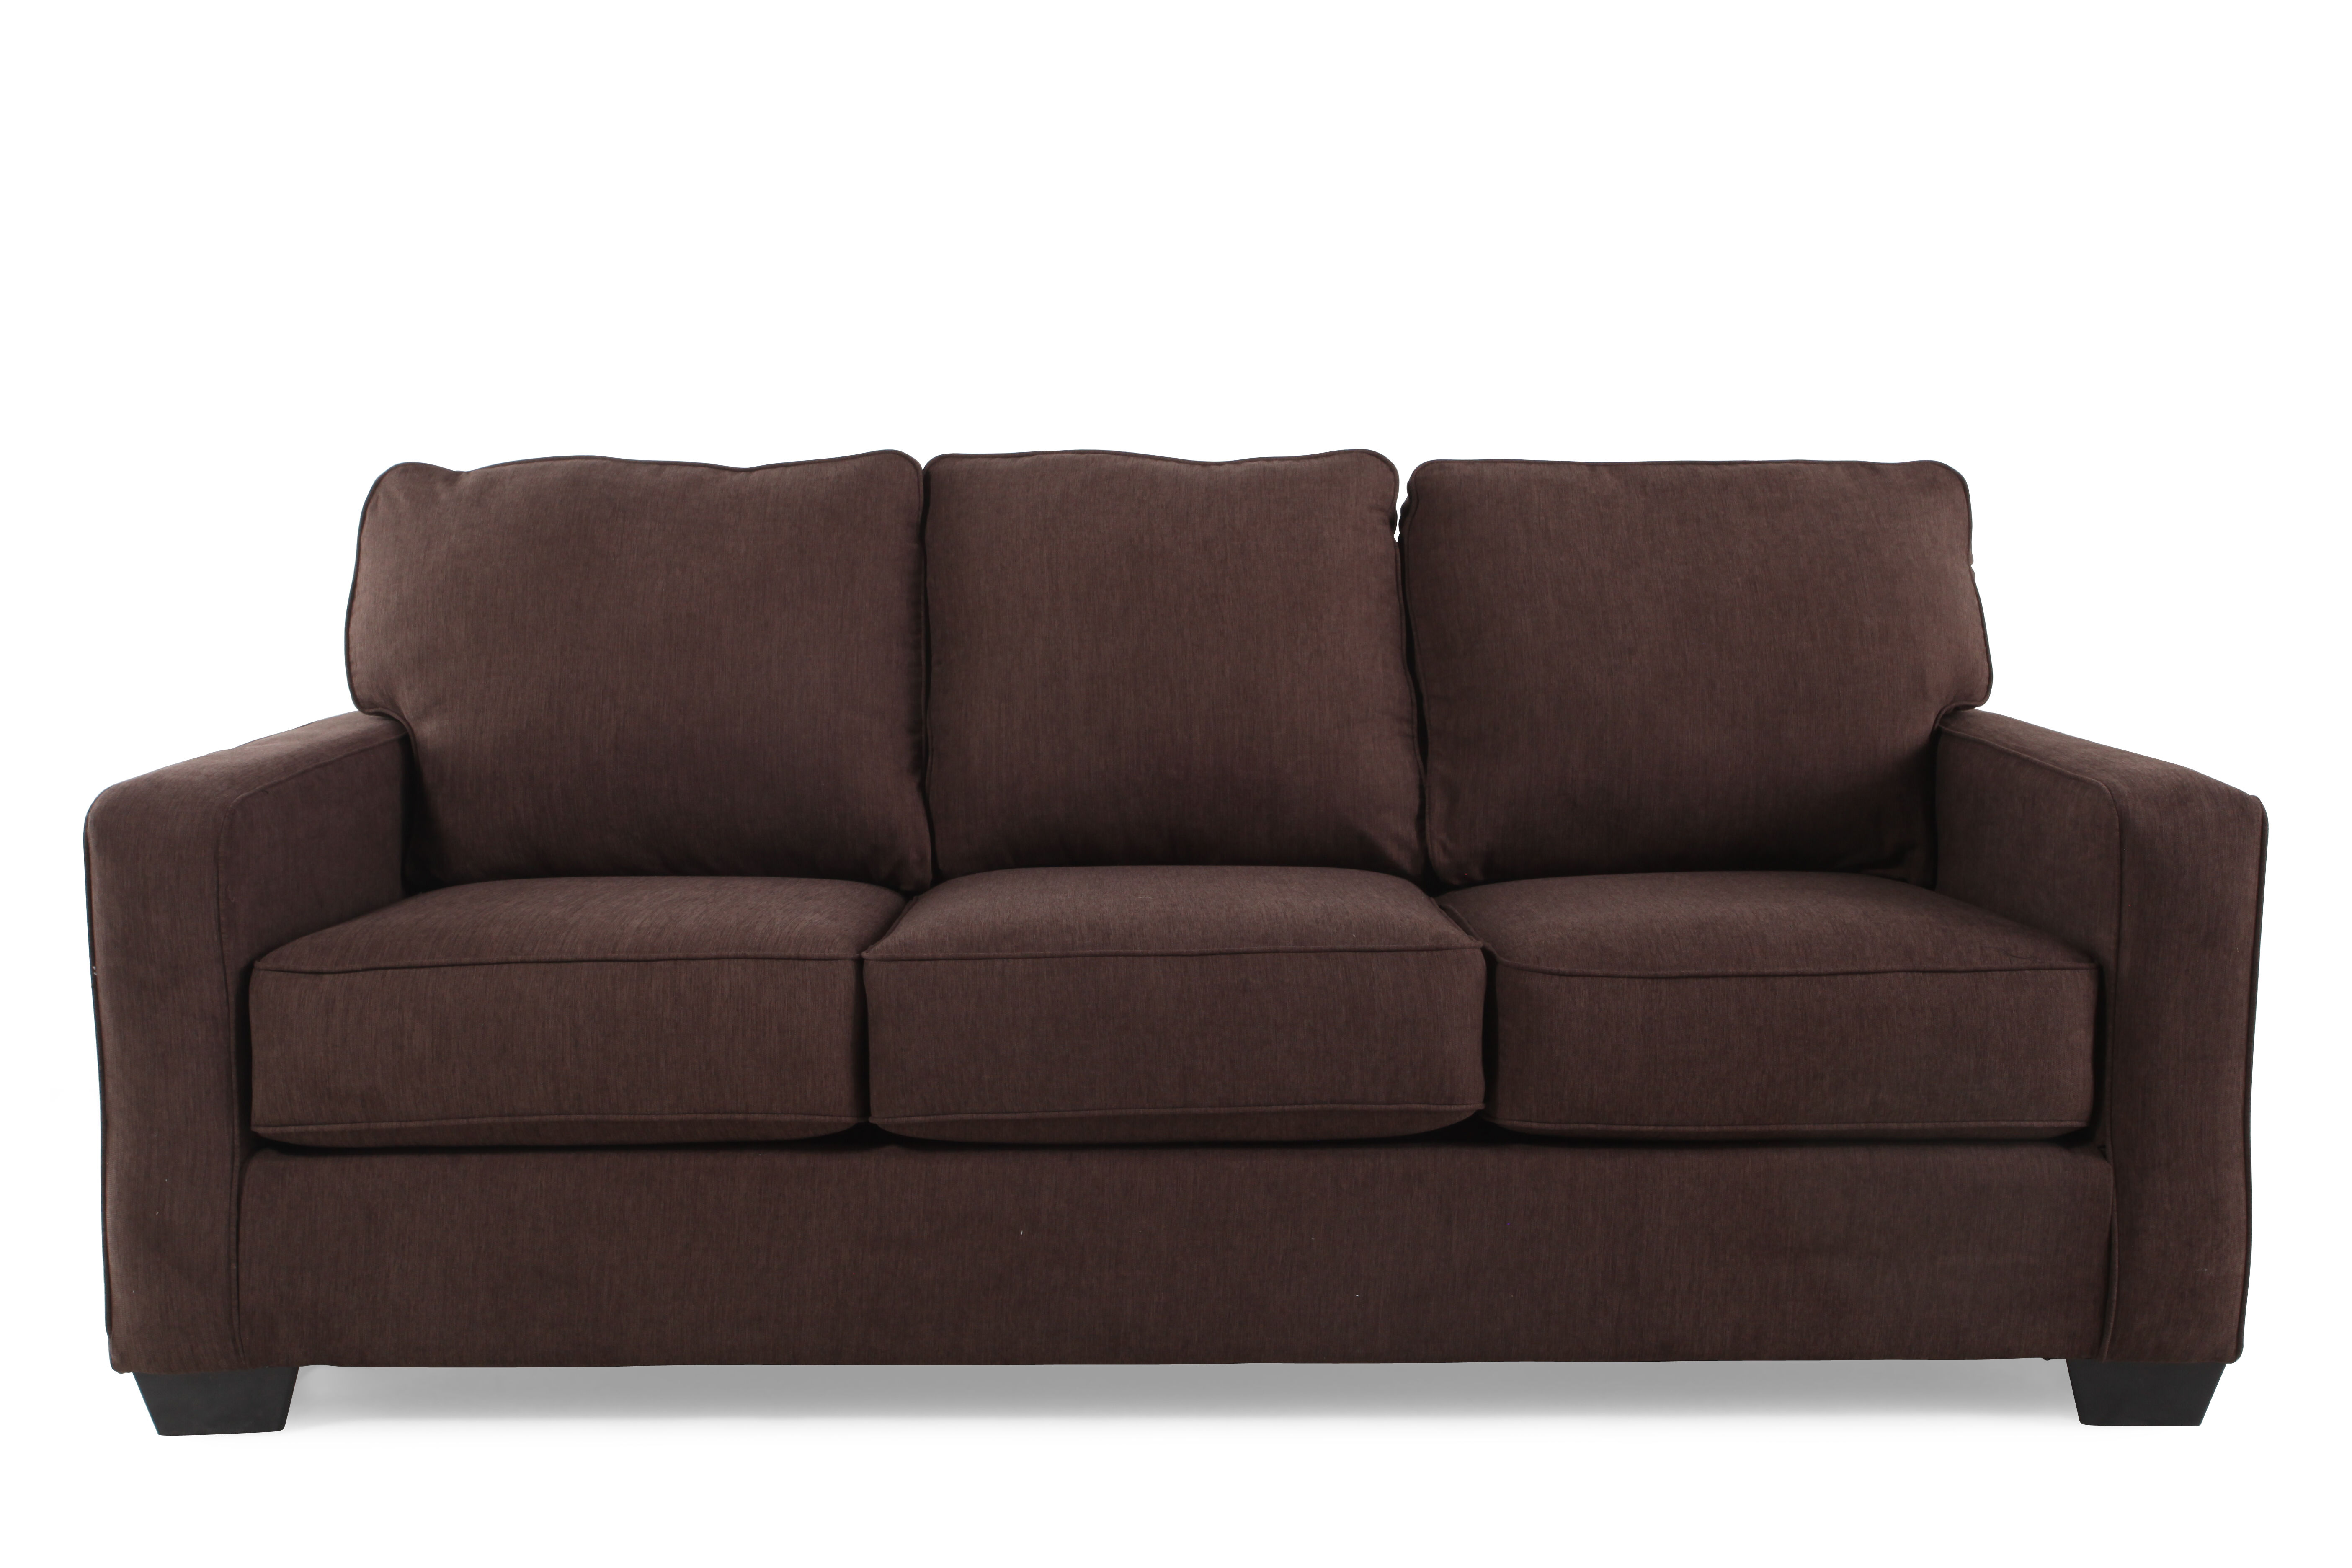 modern sleeper sofa under 1000 loose natural covers contemporary 82 quot queen in espresso mathis